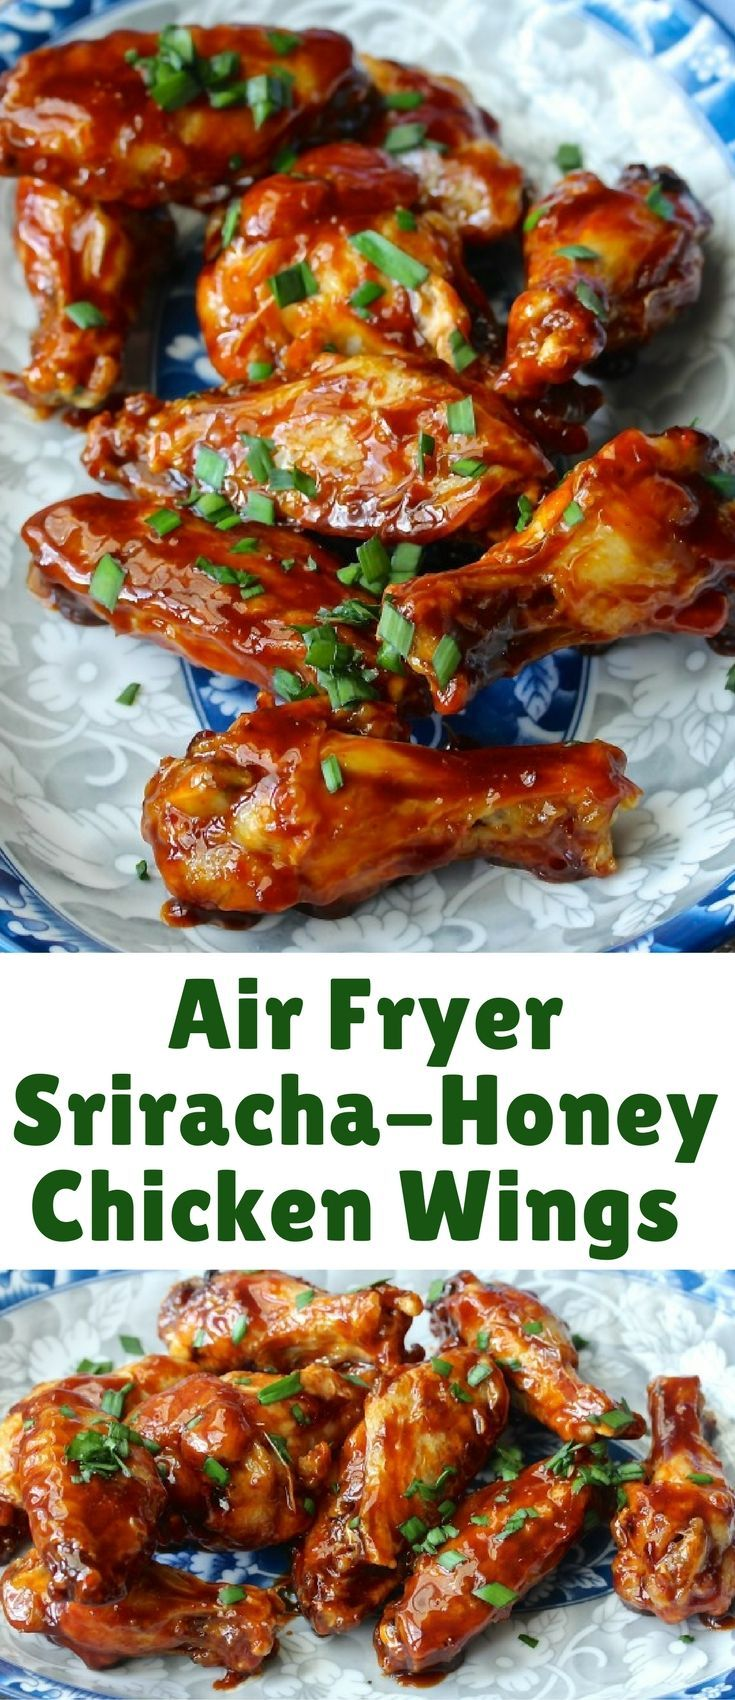 These Air Fryer Sriracha-Honey Wings are super crispy, spicy sweet, and ready in 30 minutes. It was really difficult to not keep them all to myself.